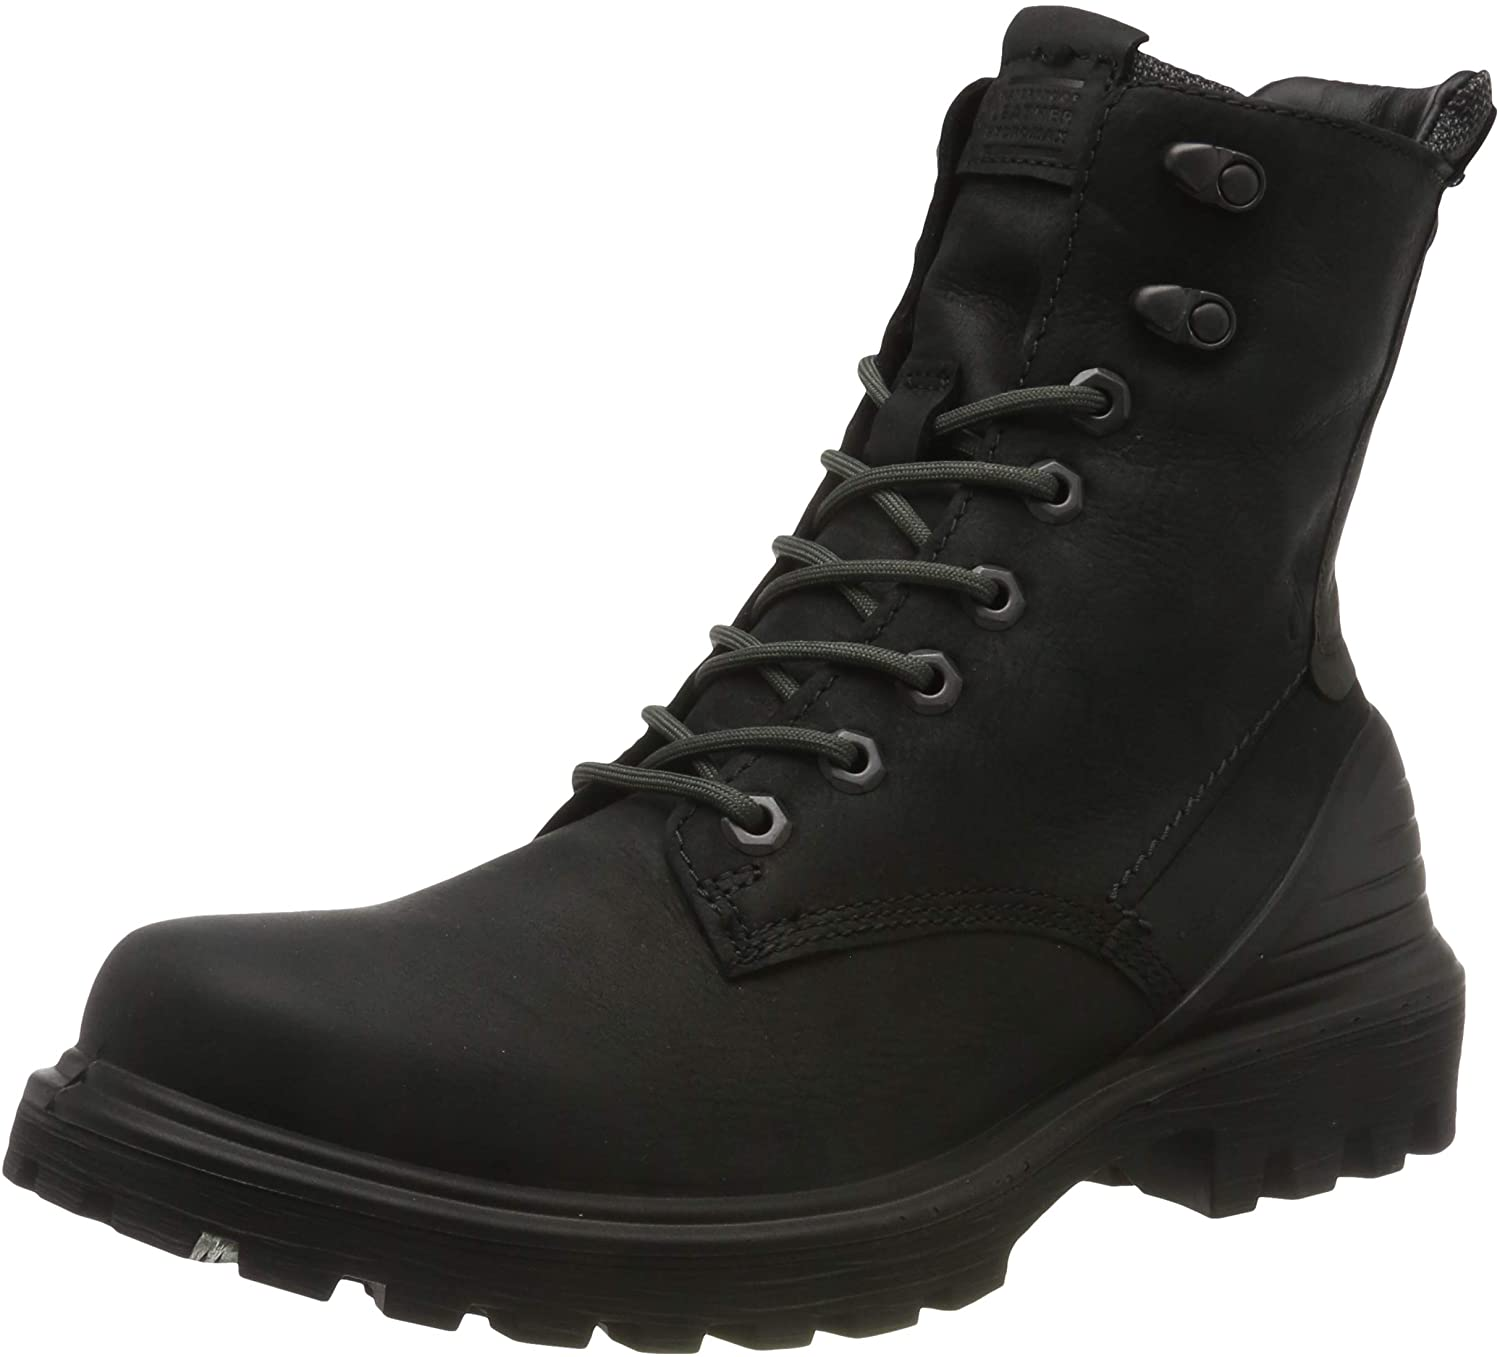 ECCO Men's Tred Tray Waterproof High Boot Hydromax Ankle